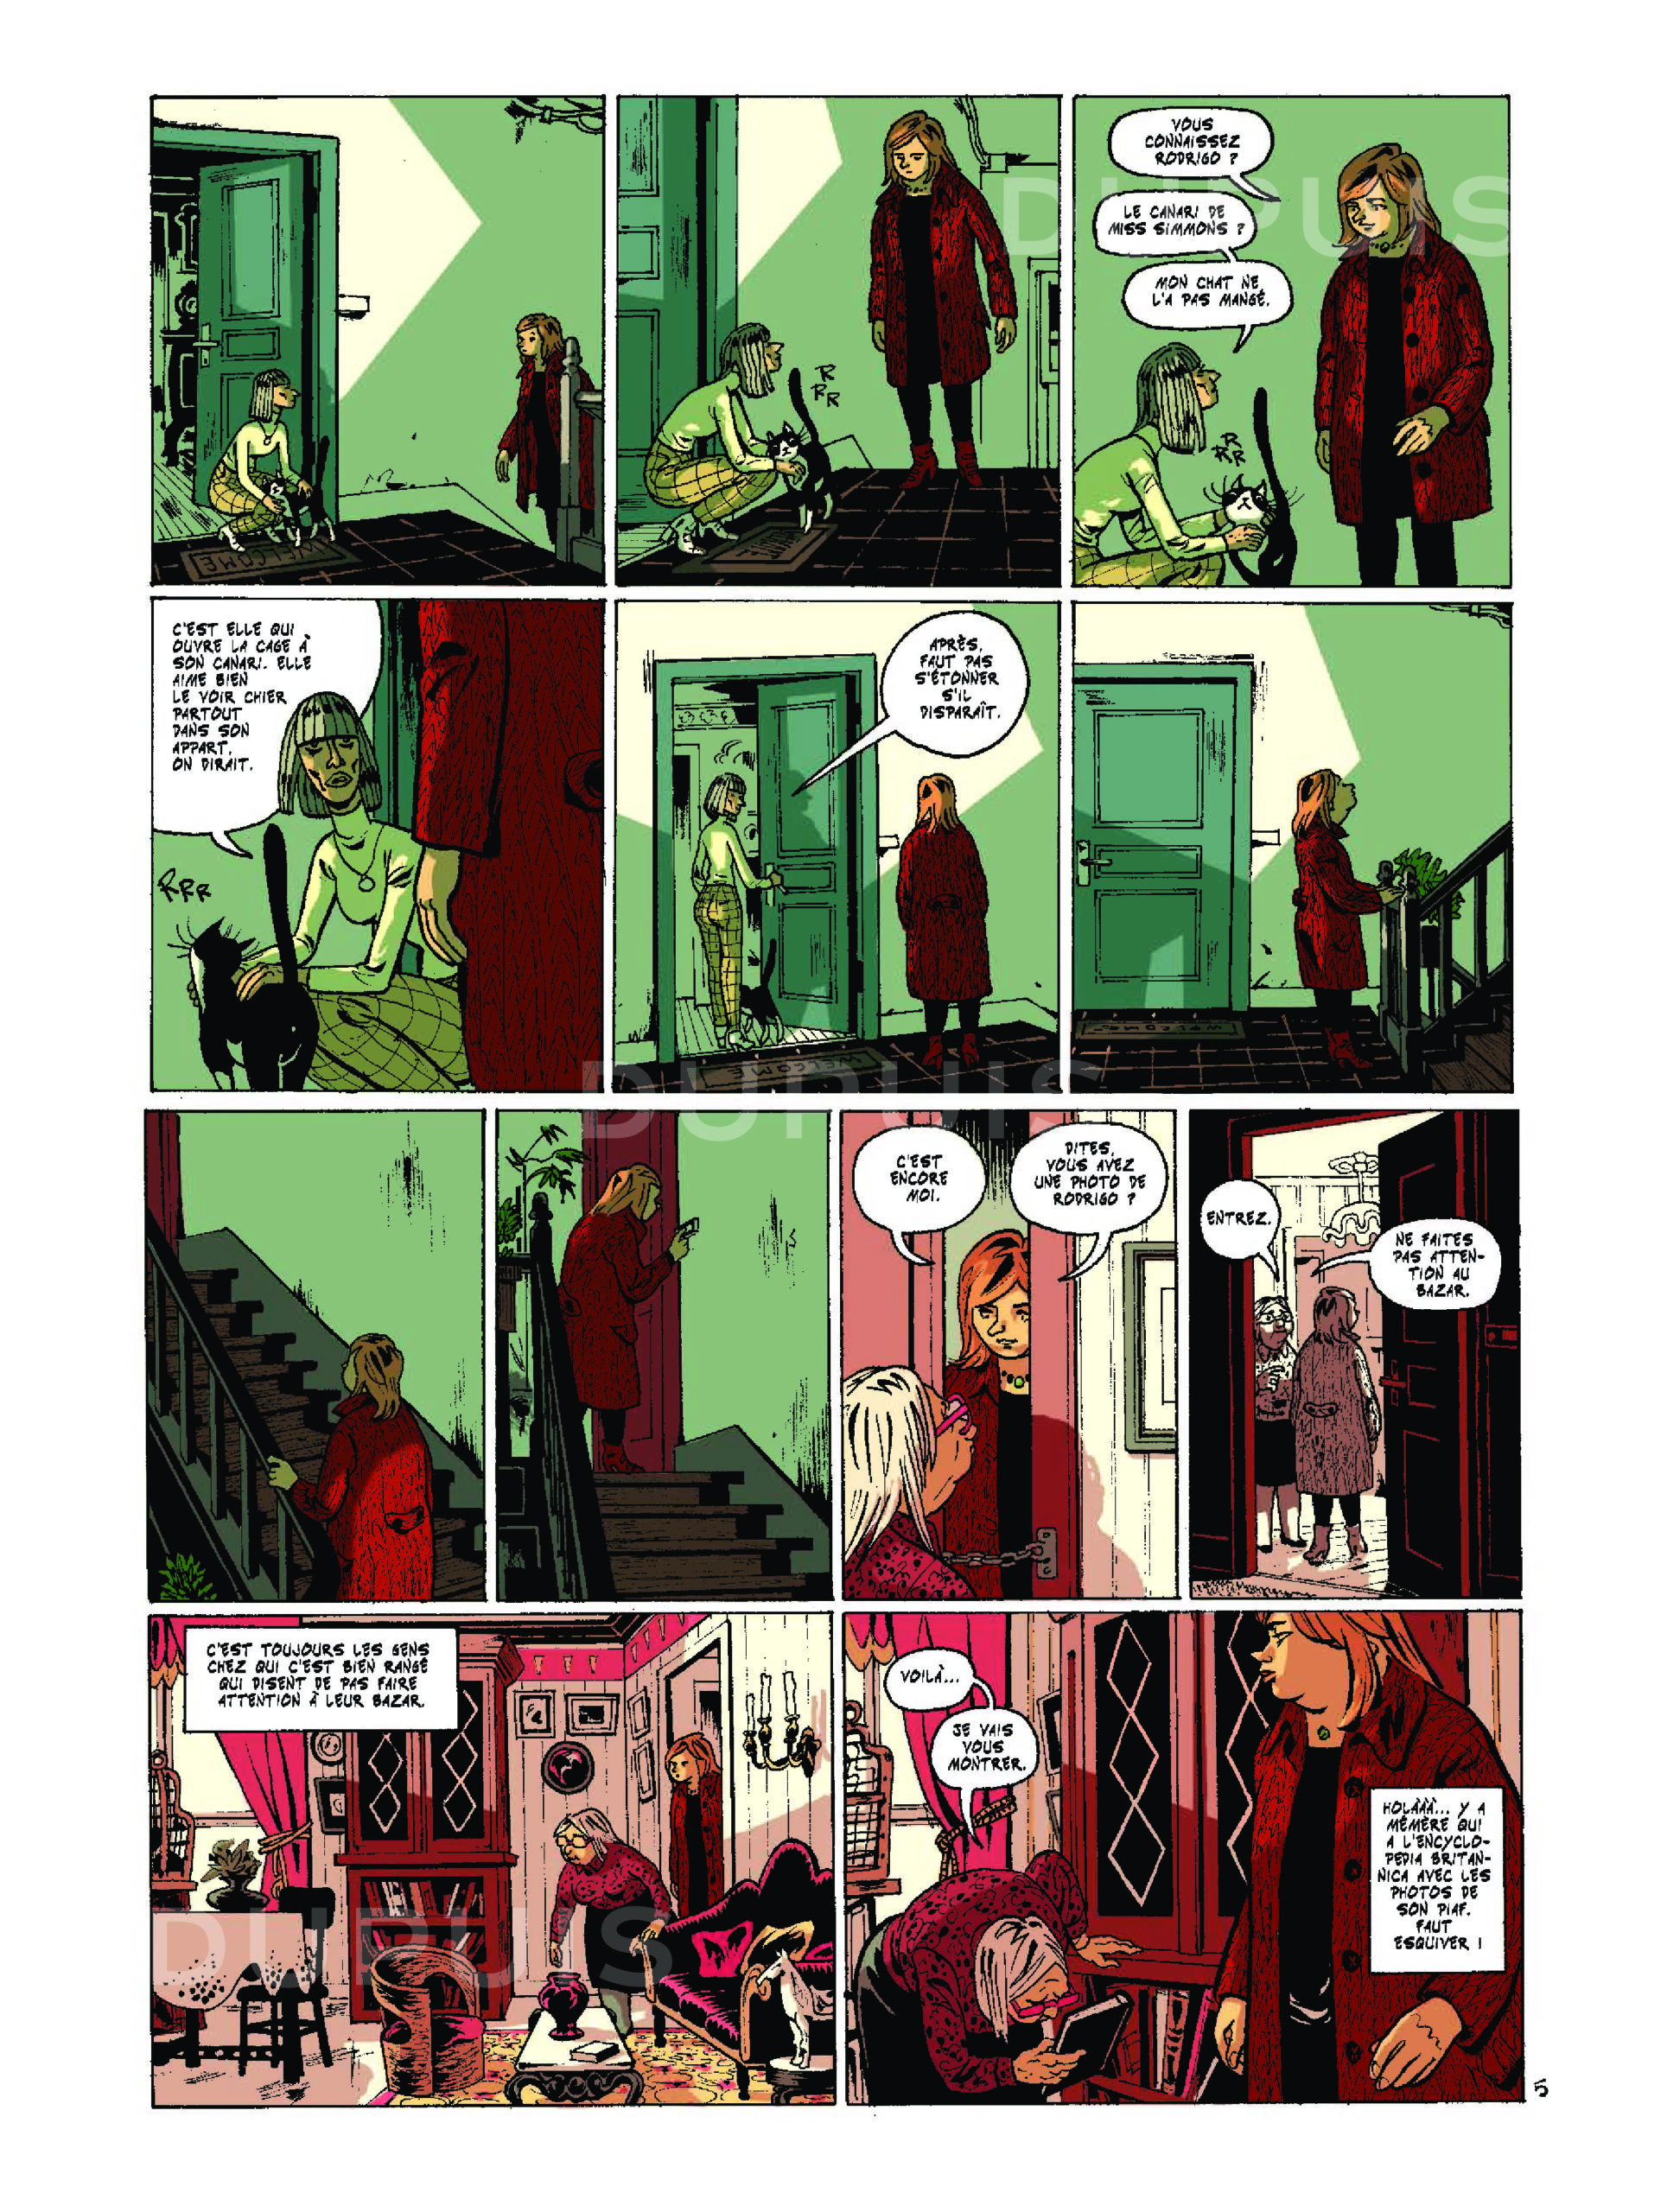 maggy garrisson page bd